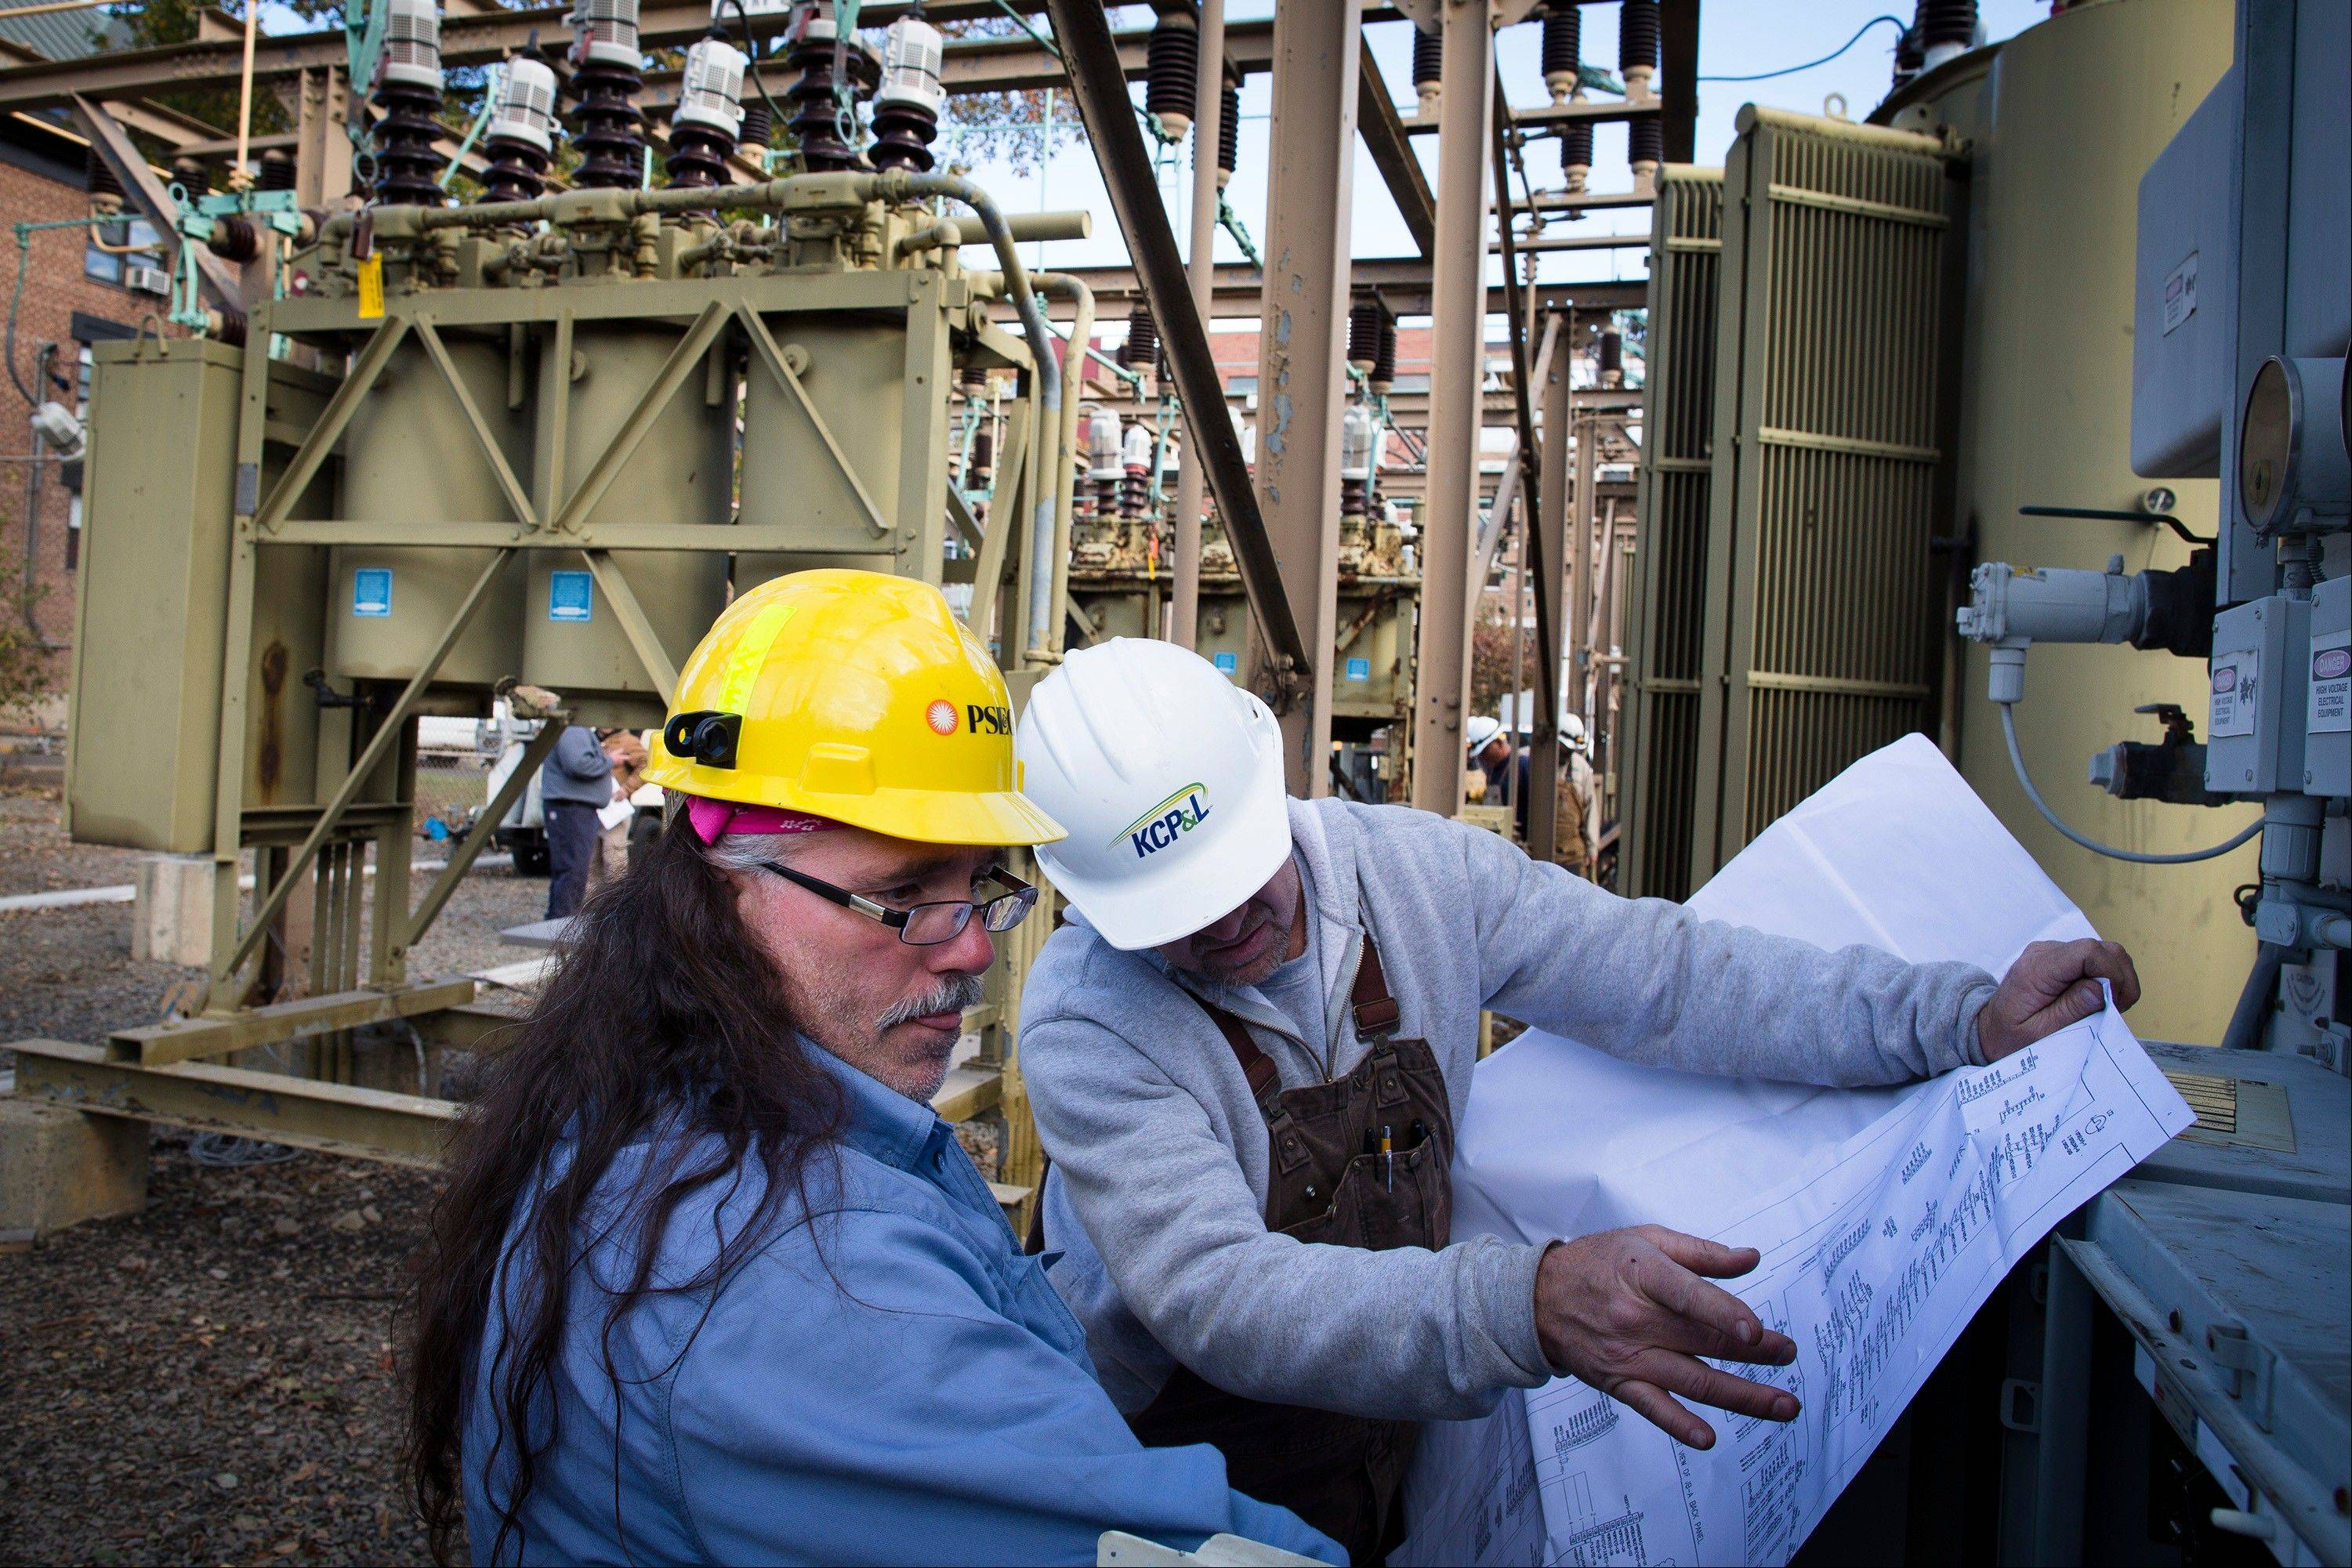 Workers inspect a transformer box at a substation on Harrison and 2nd Street as surrounding neighborhoods remain without power due to damage caused by Superstorm Sandy on Sundayin Hoboken, N.J. Hiring in the long-depressed U.S. construction industry will likely get a boost from the rebuilding that will follow Superstorm Sandy.